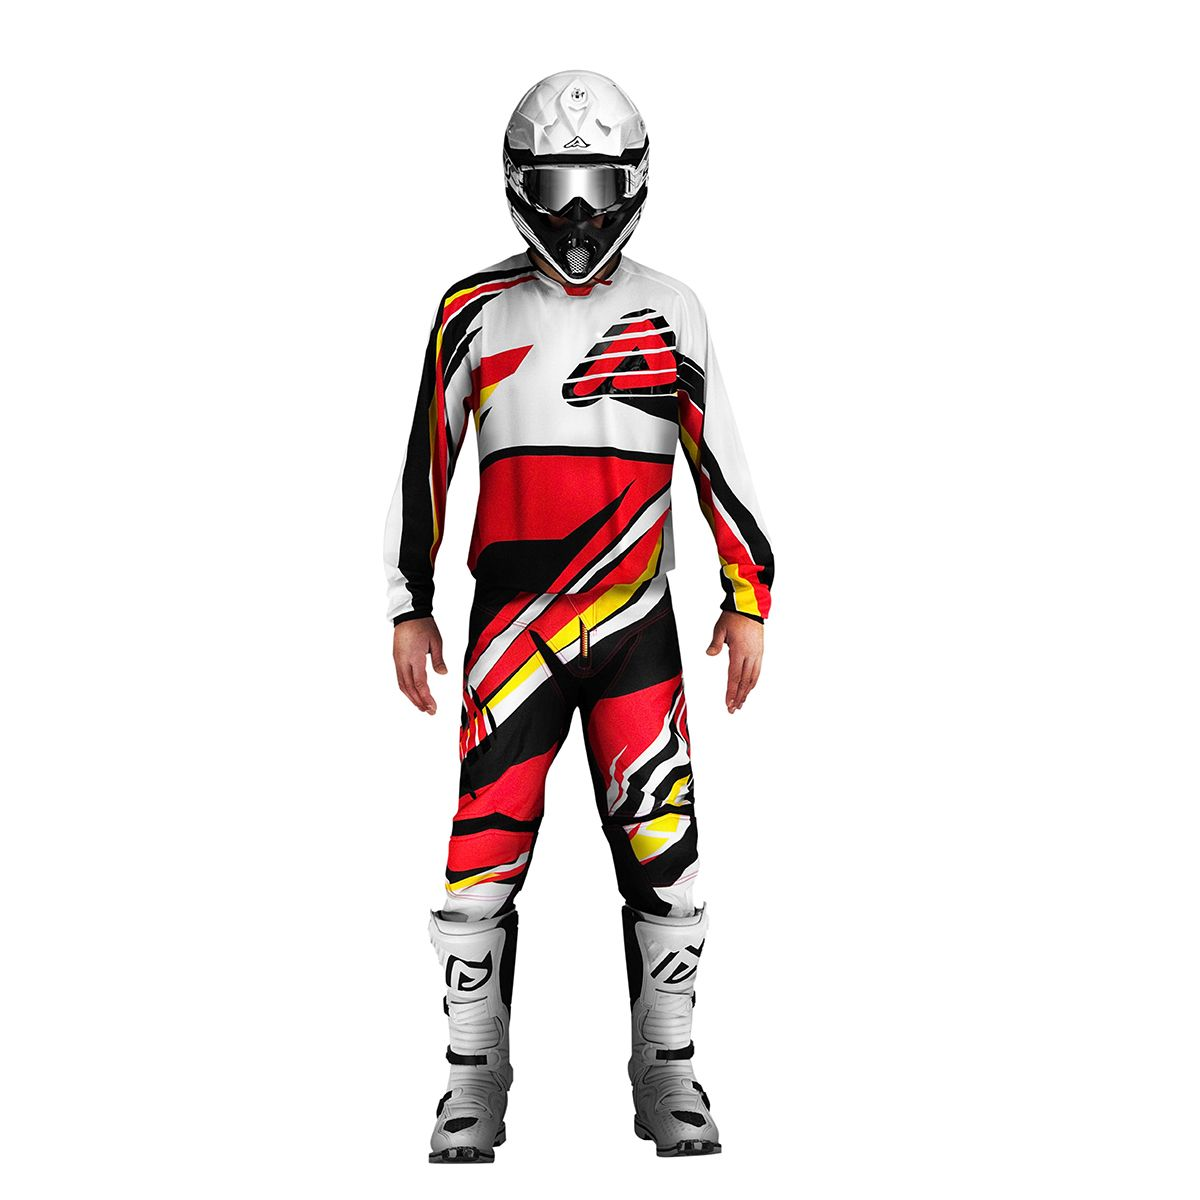 cat_6_X_GEAR_346%20FRONT%20sito